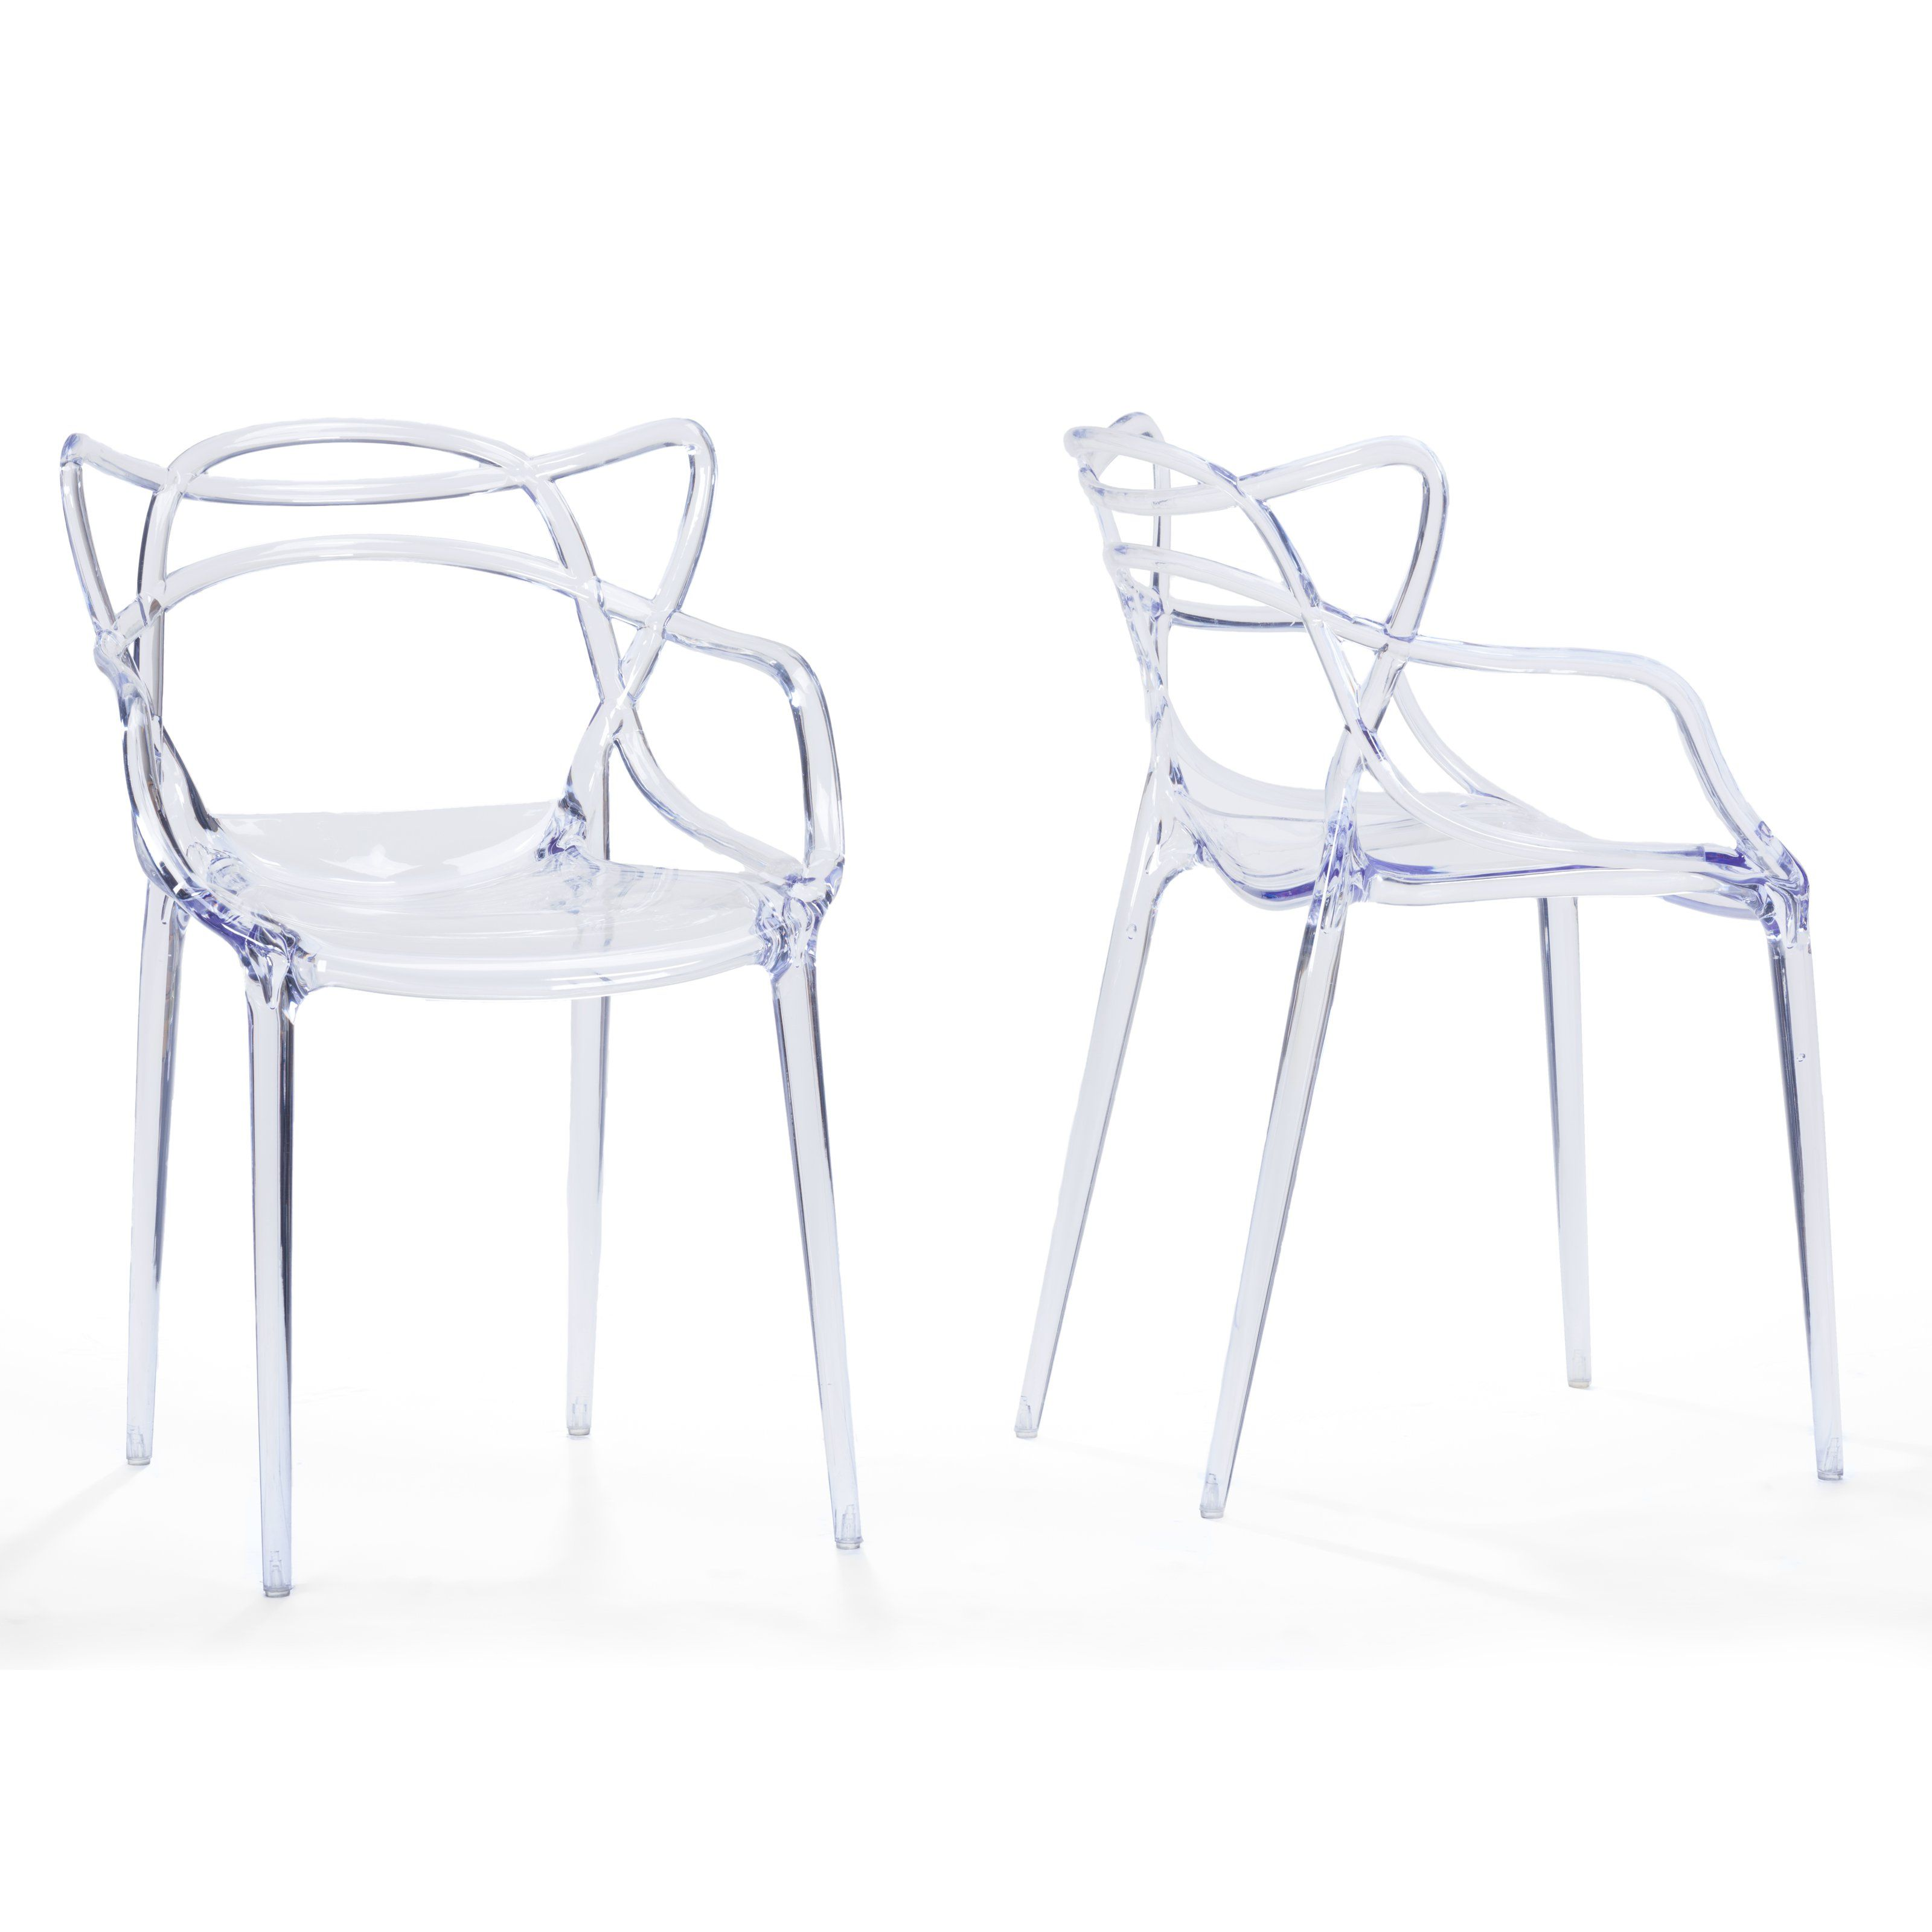 Baxton Studio Electron Dining Chair - Set of 2 | from hayneedle.com